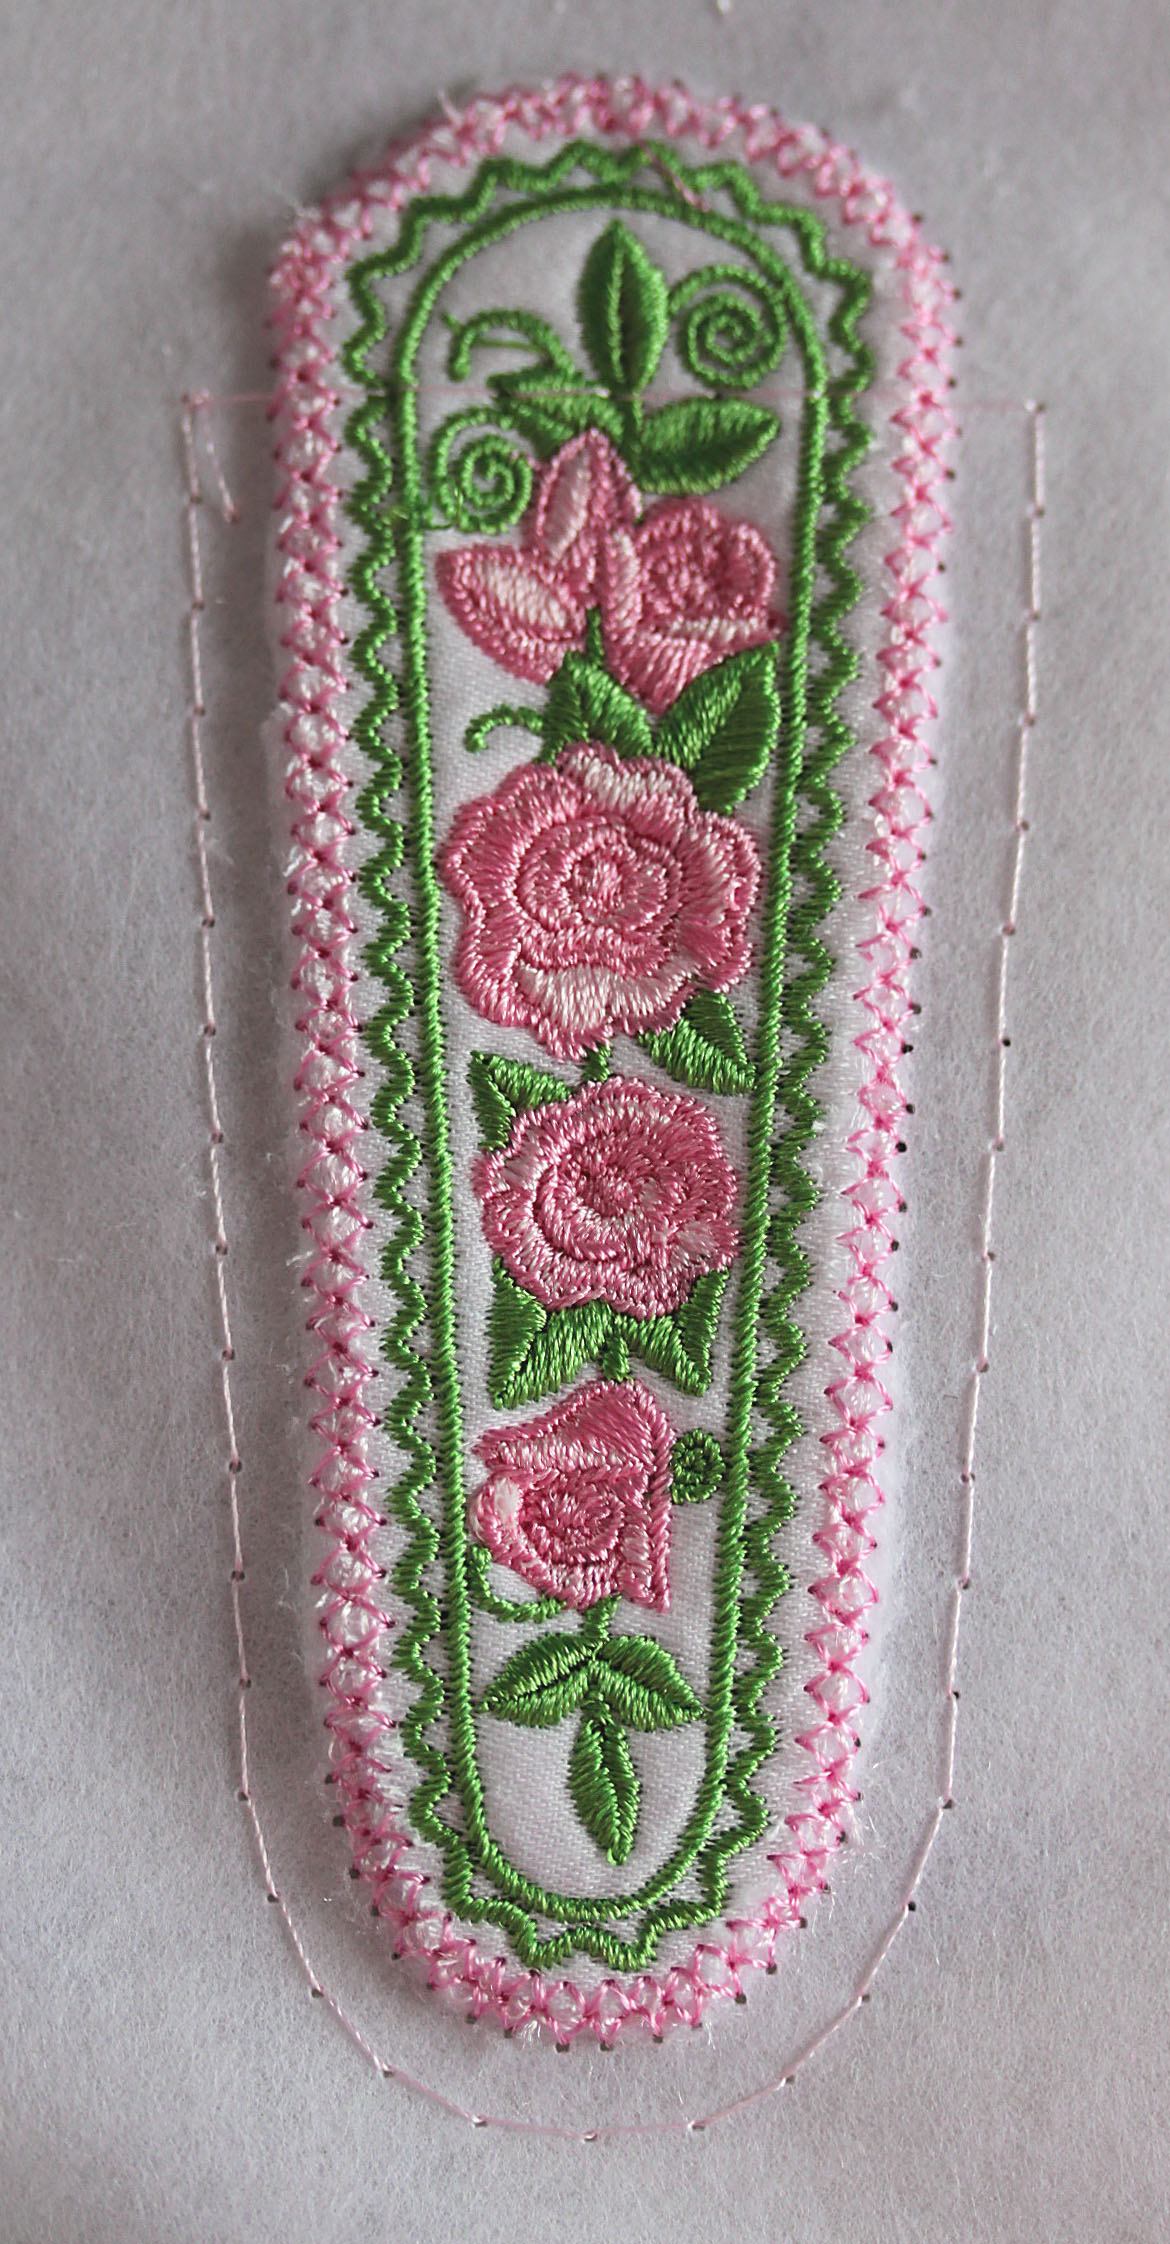 Floral Embroidered Piece Atop Fabric with Outline